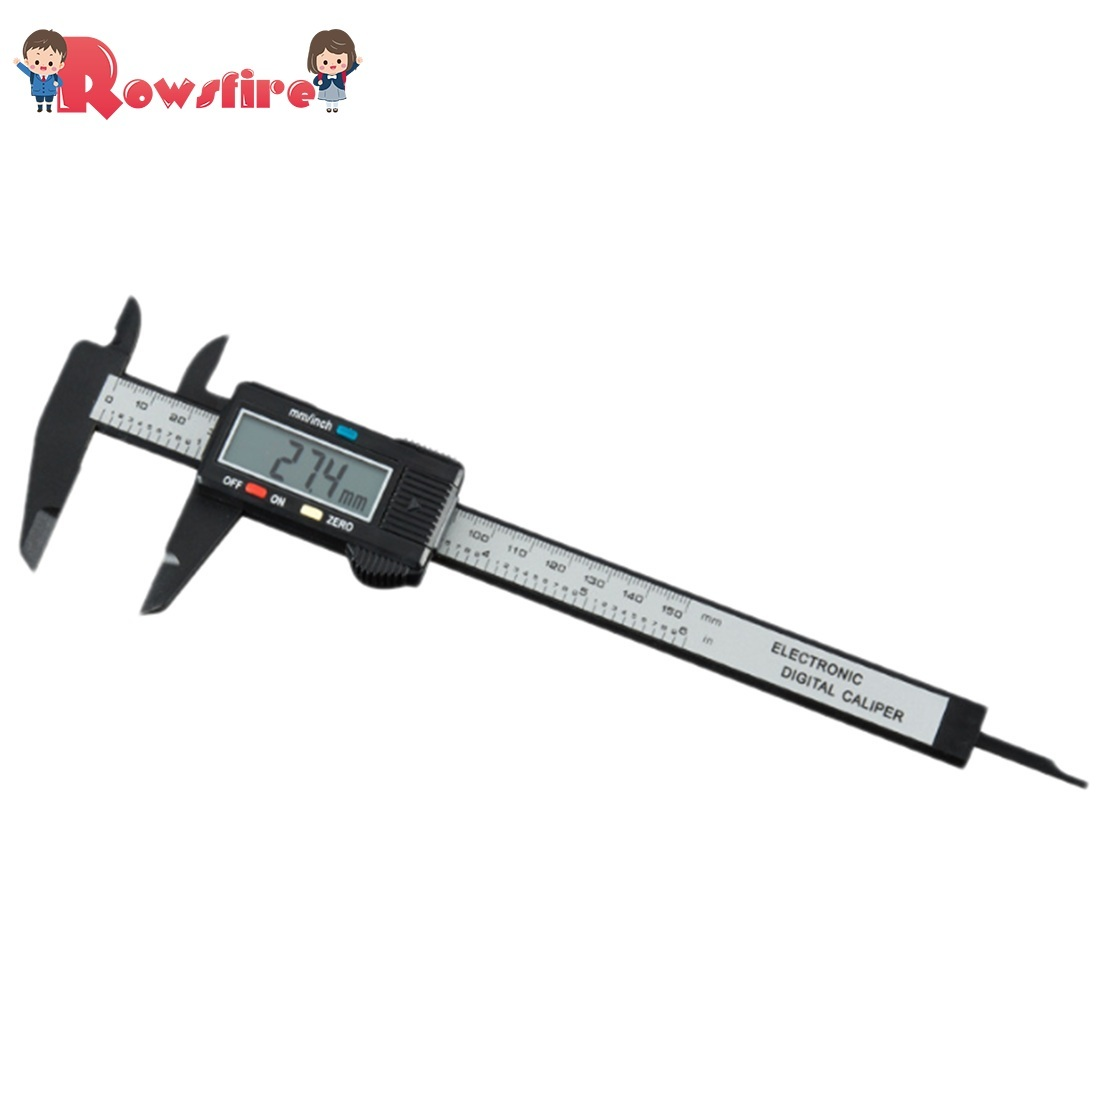 Rowsfire 1 Pcs 0-150mm Electronic Digital Display Vernier Caliper For Water Gel Beads Modification - Cool Black Value Edition